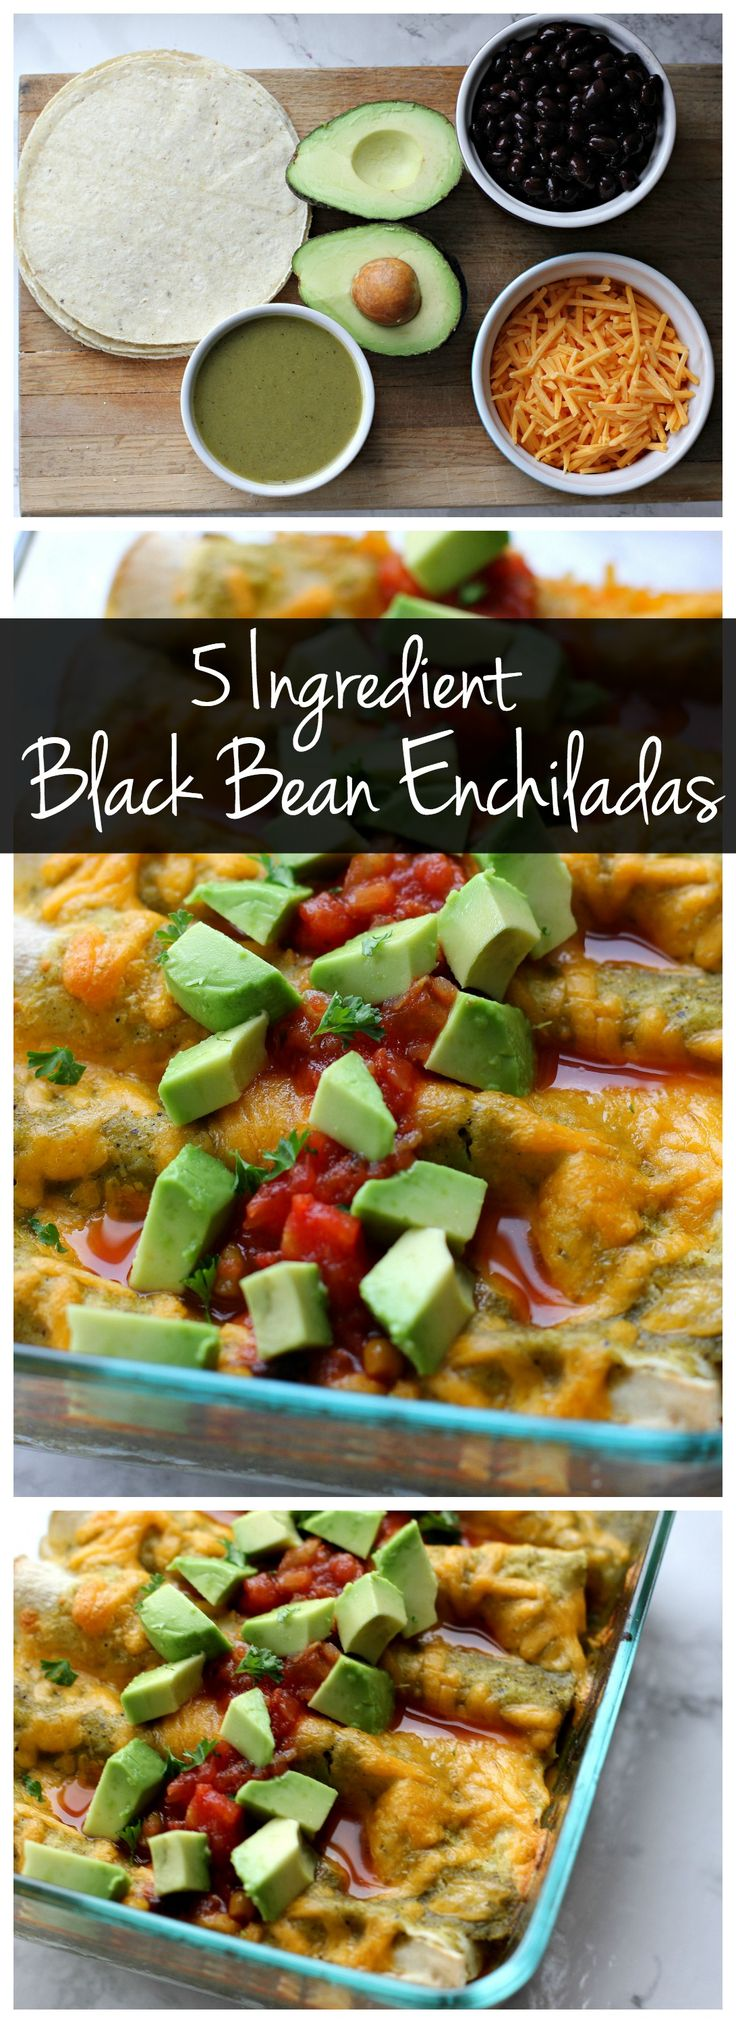 These 5 ingredient black bean enchiladas only take a few minutes to assemble so they're a perfect vegetarian weeknight recipe!